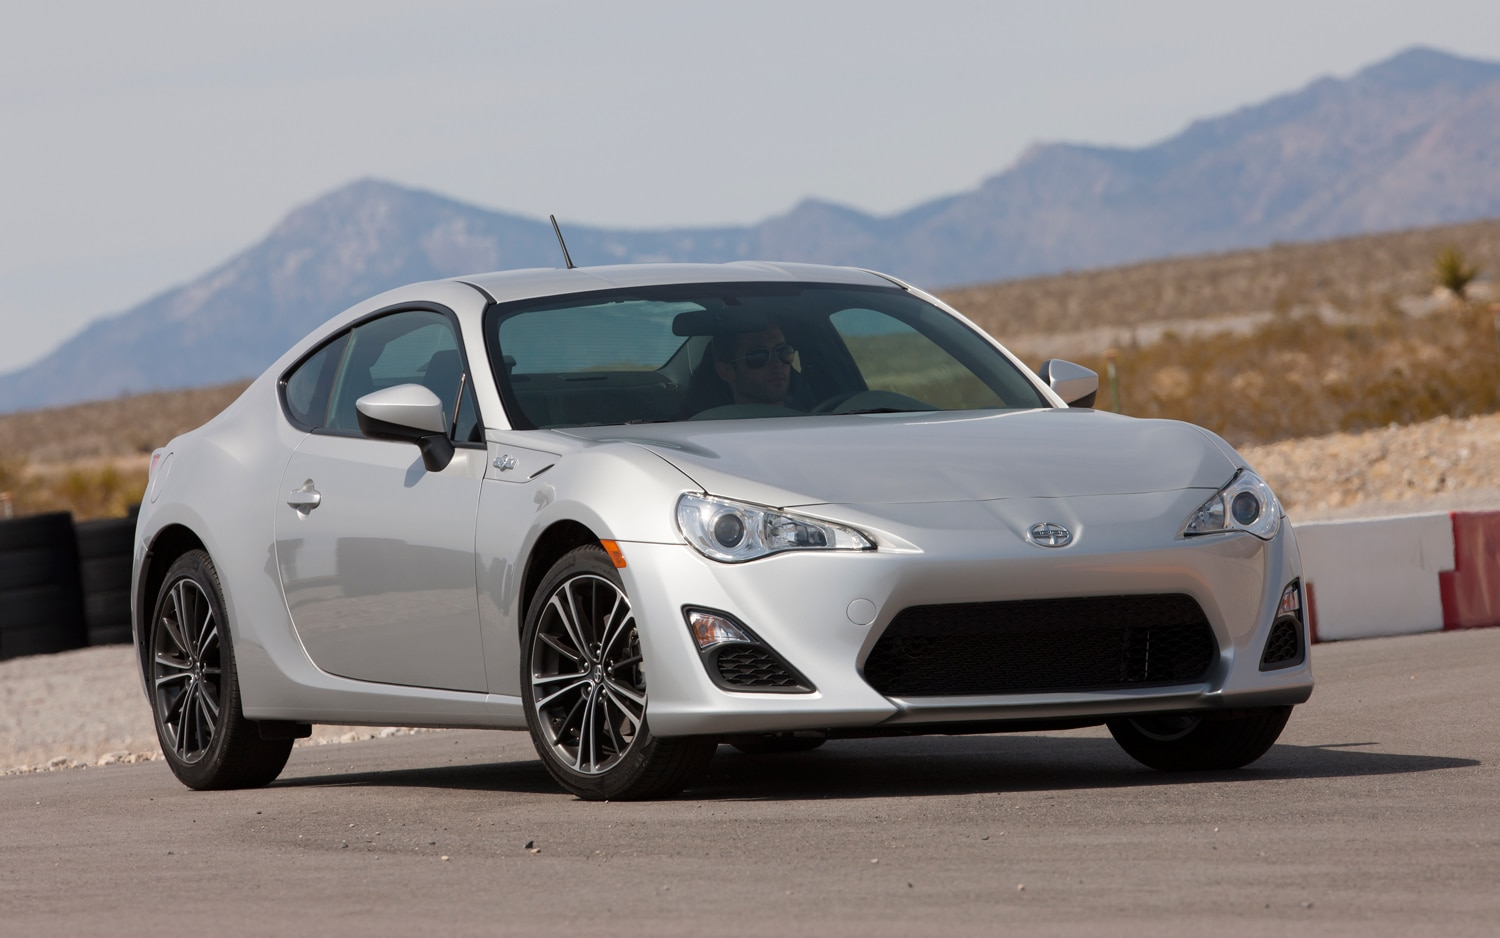 Brz 0 60 >> First Test: 2013 Scion FR-S - Automobile Magazine